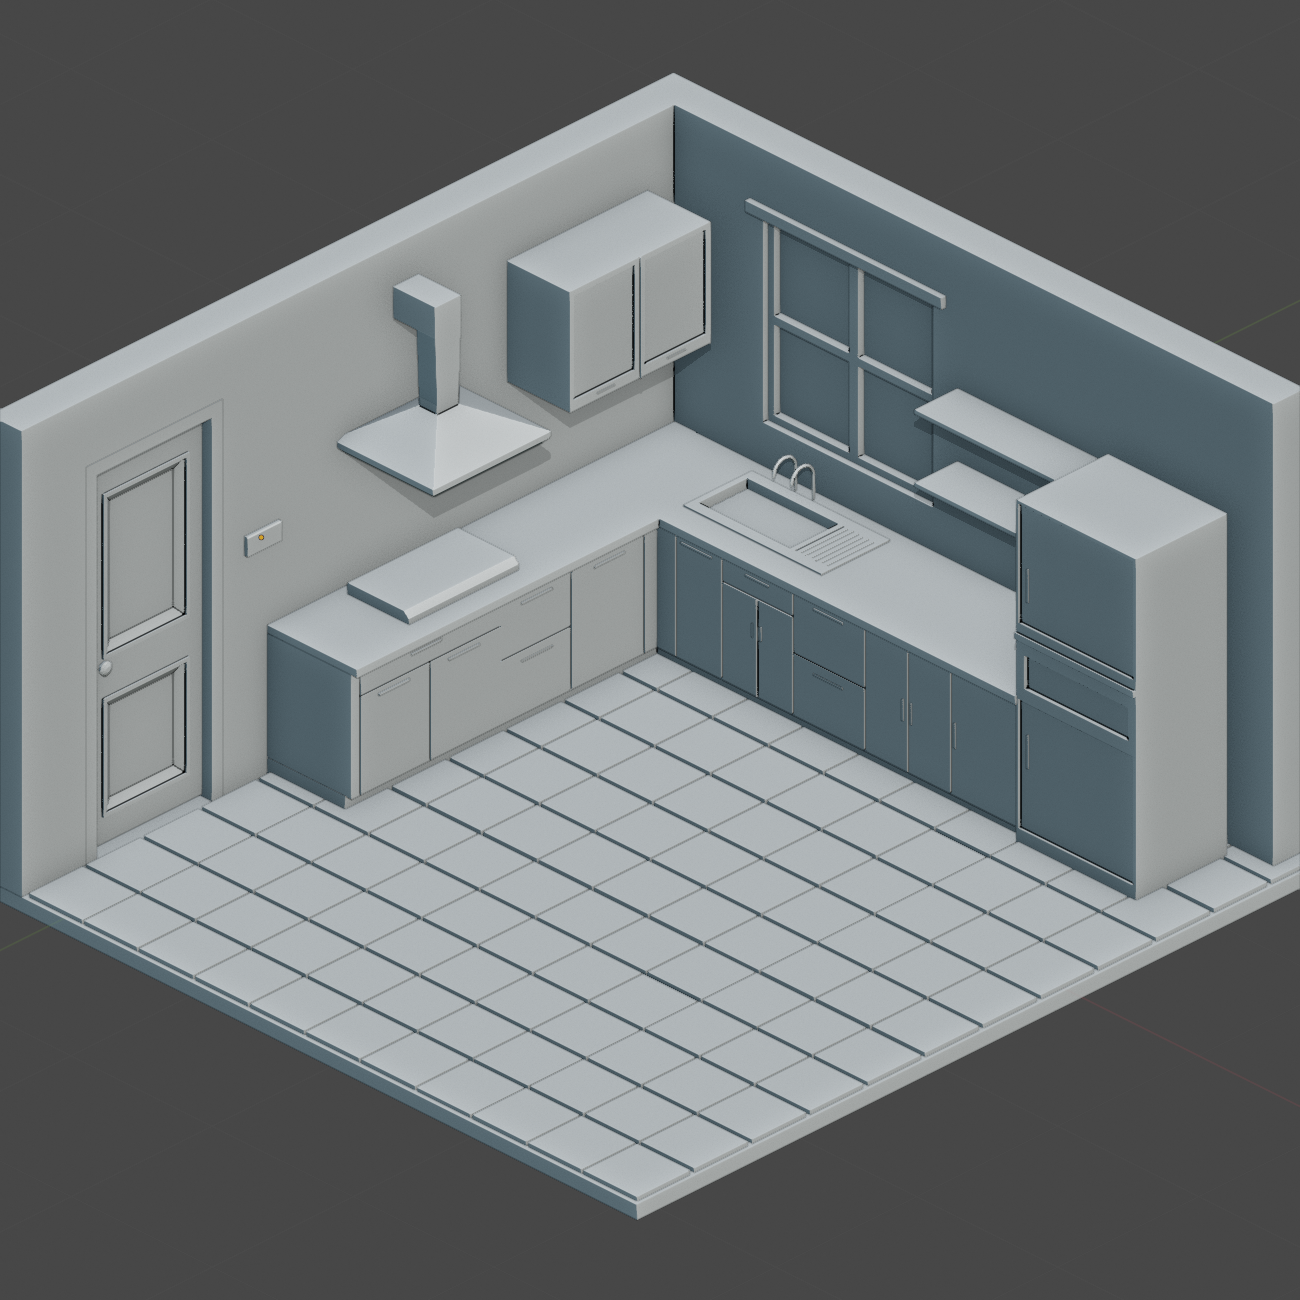 Low Poly Kitchen preview image 2